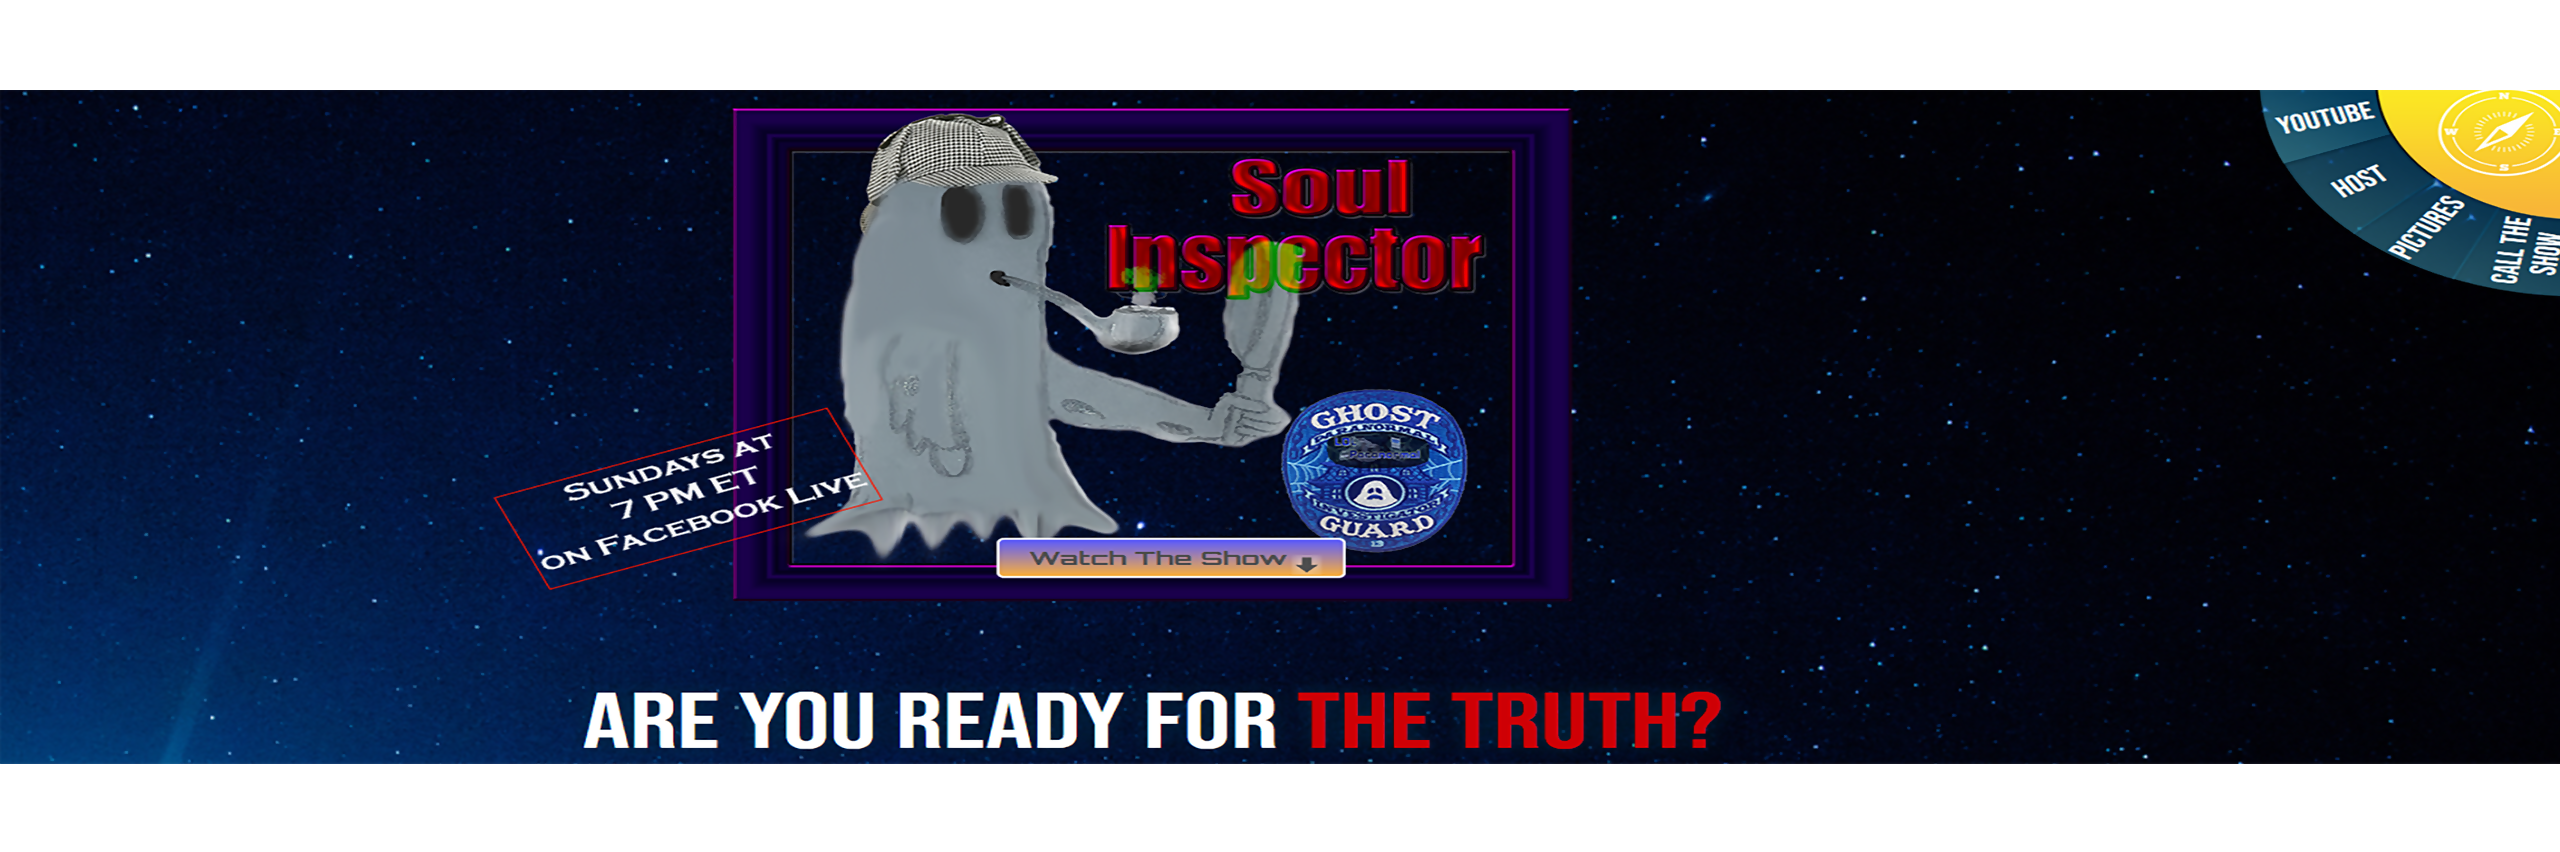 Soul Inspector Paranormal Show Live!